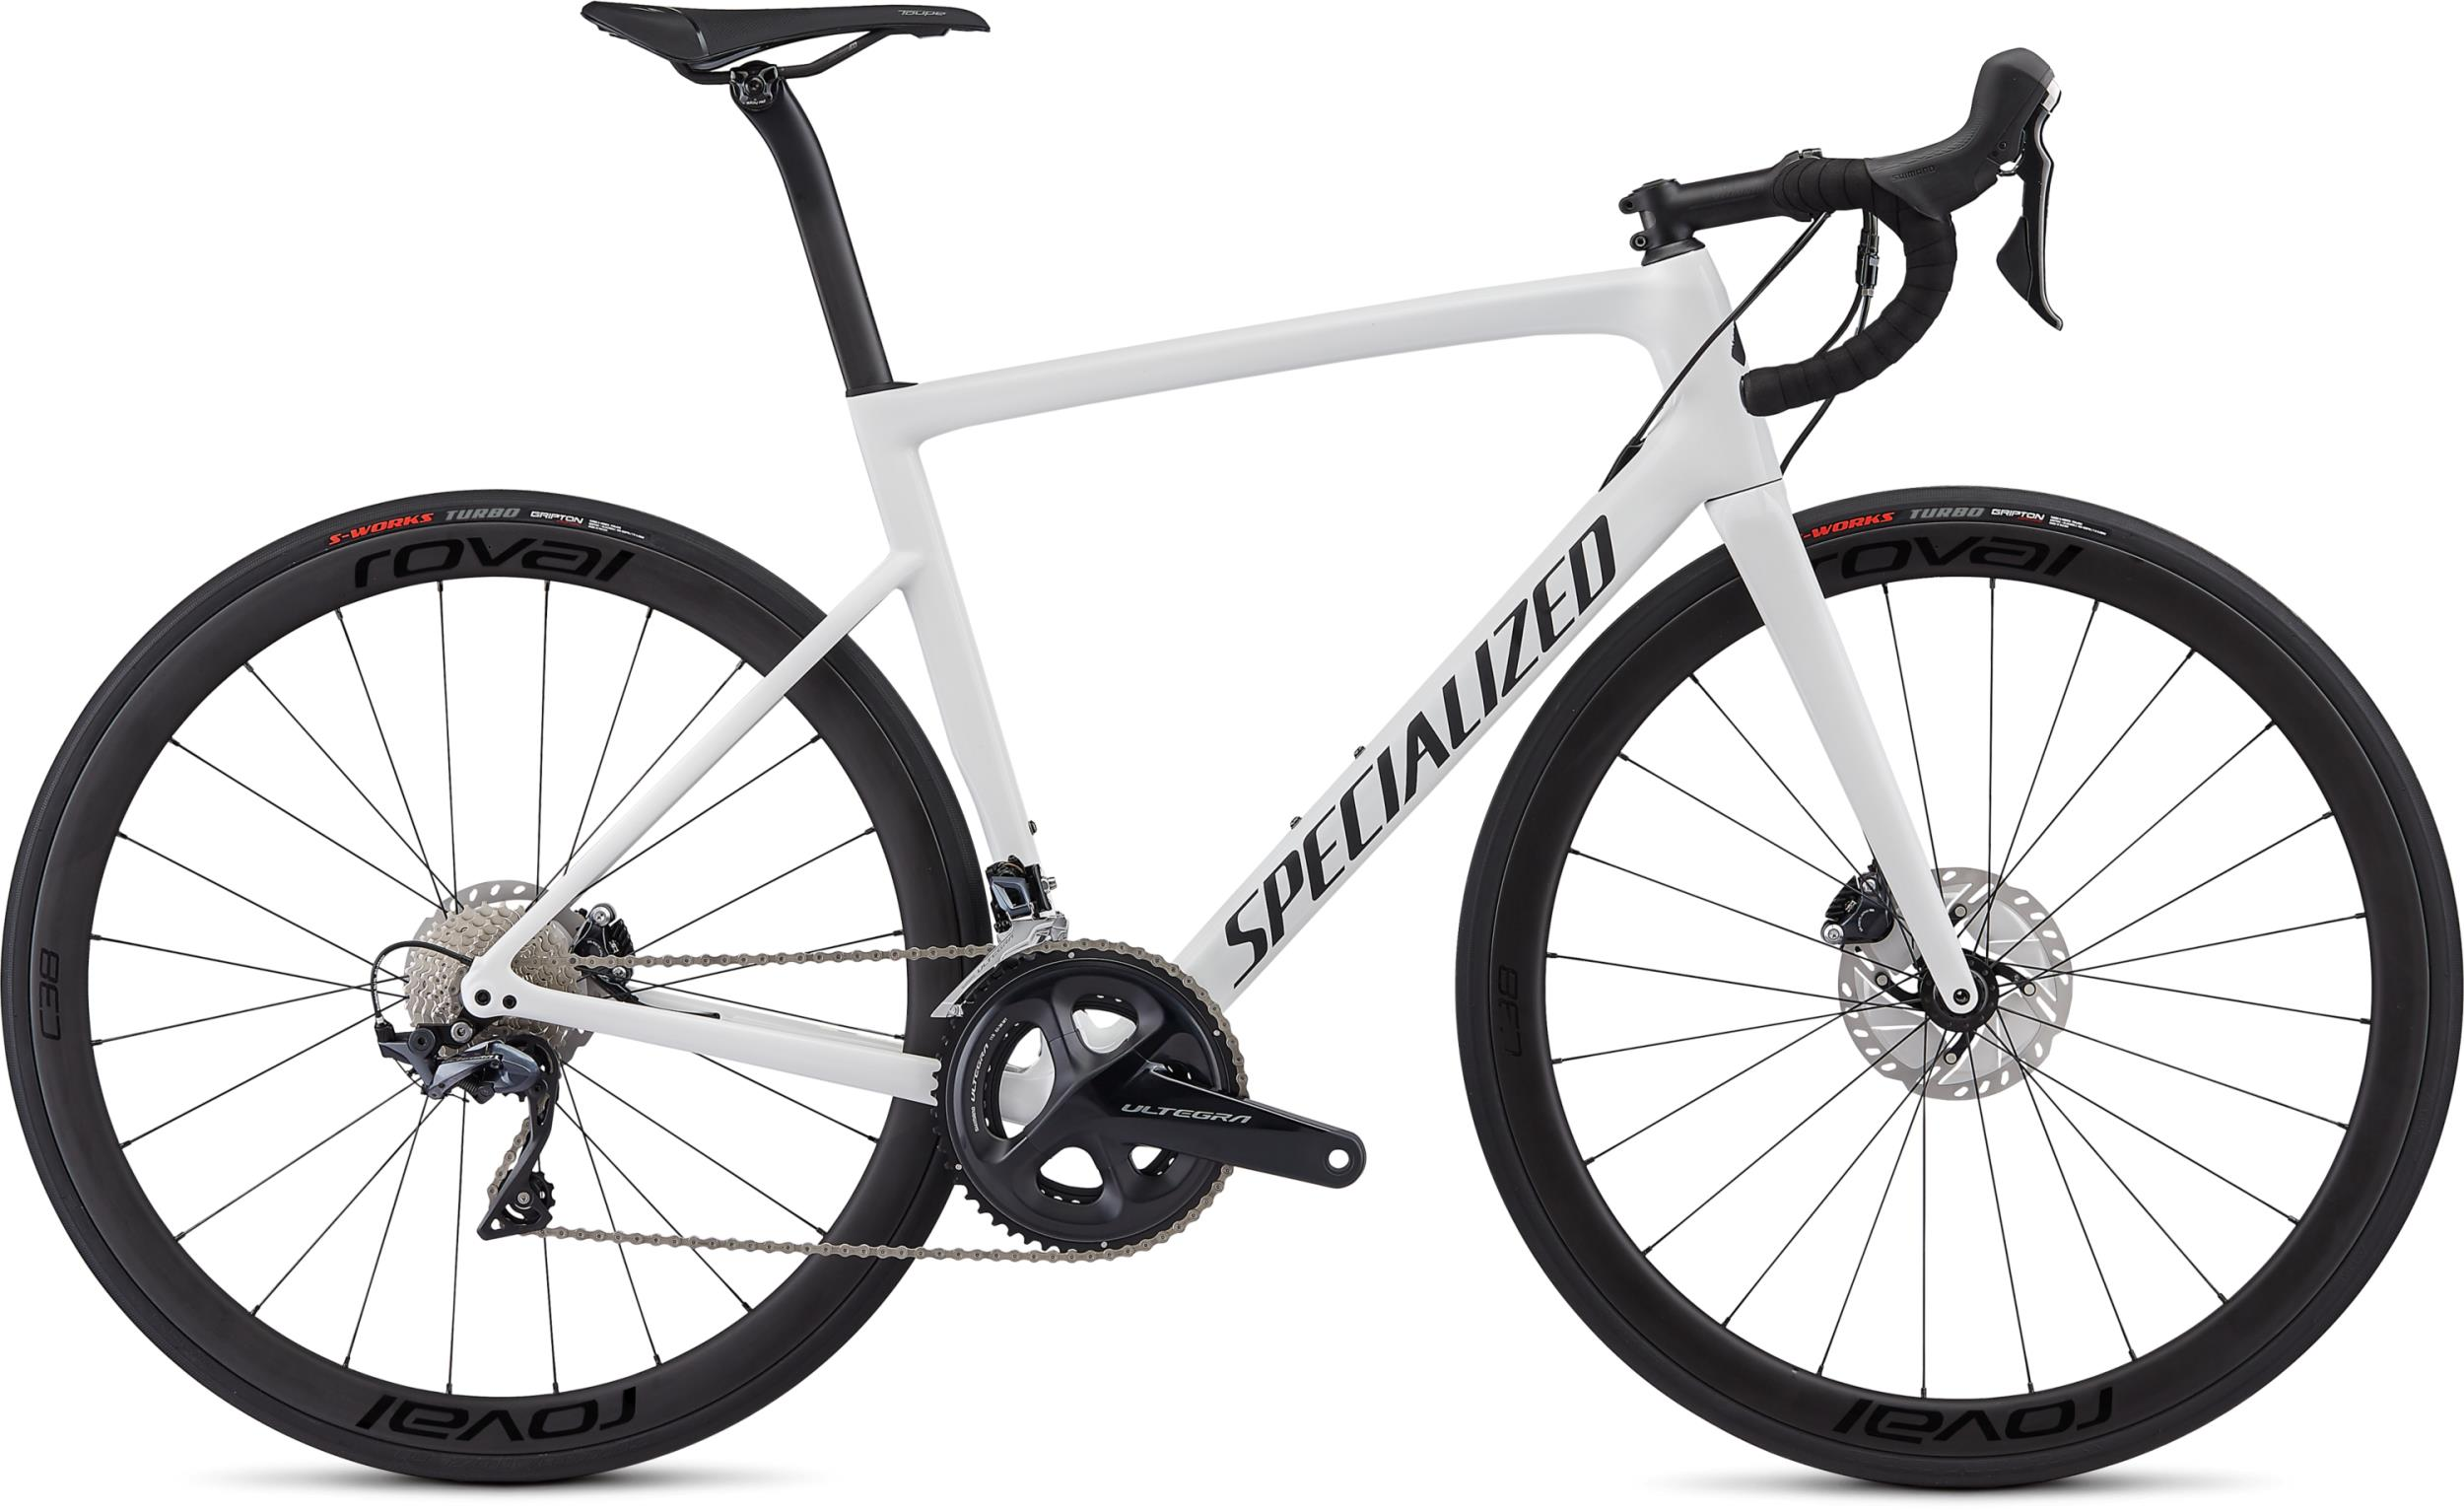 Specialized Men's Tarmac Disc Expert White/Blue Ghost Pearl/Satin Black/Clean 2019 - 28 -  54 cm